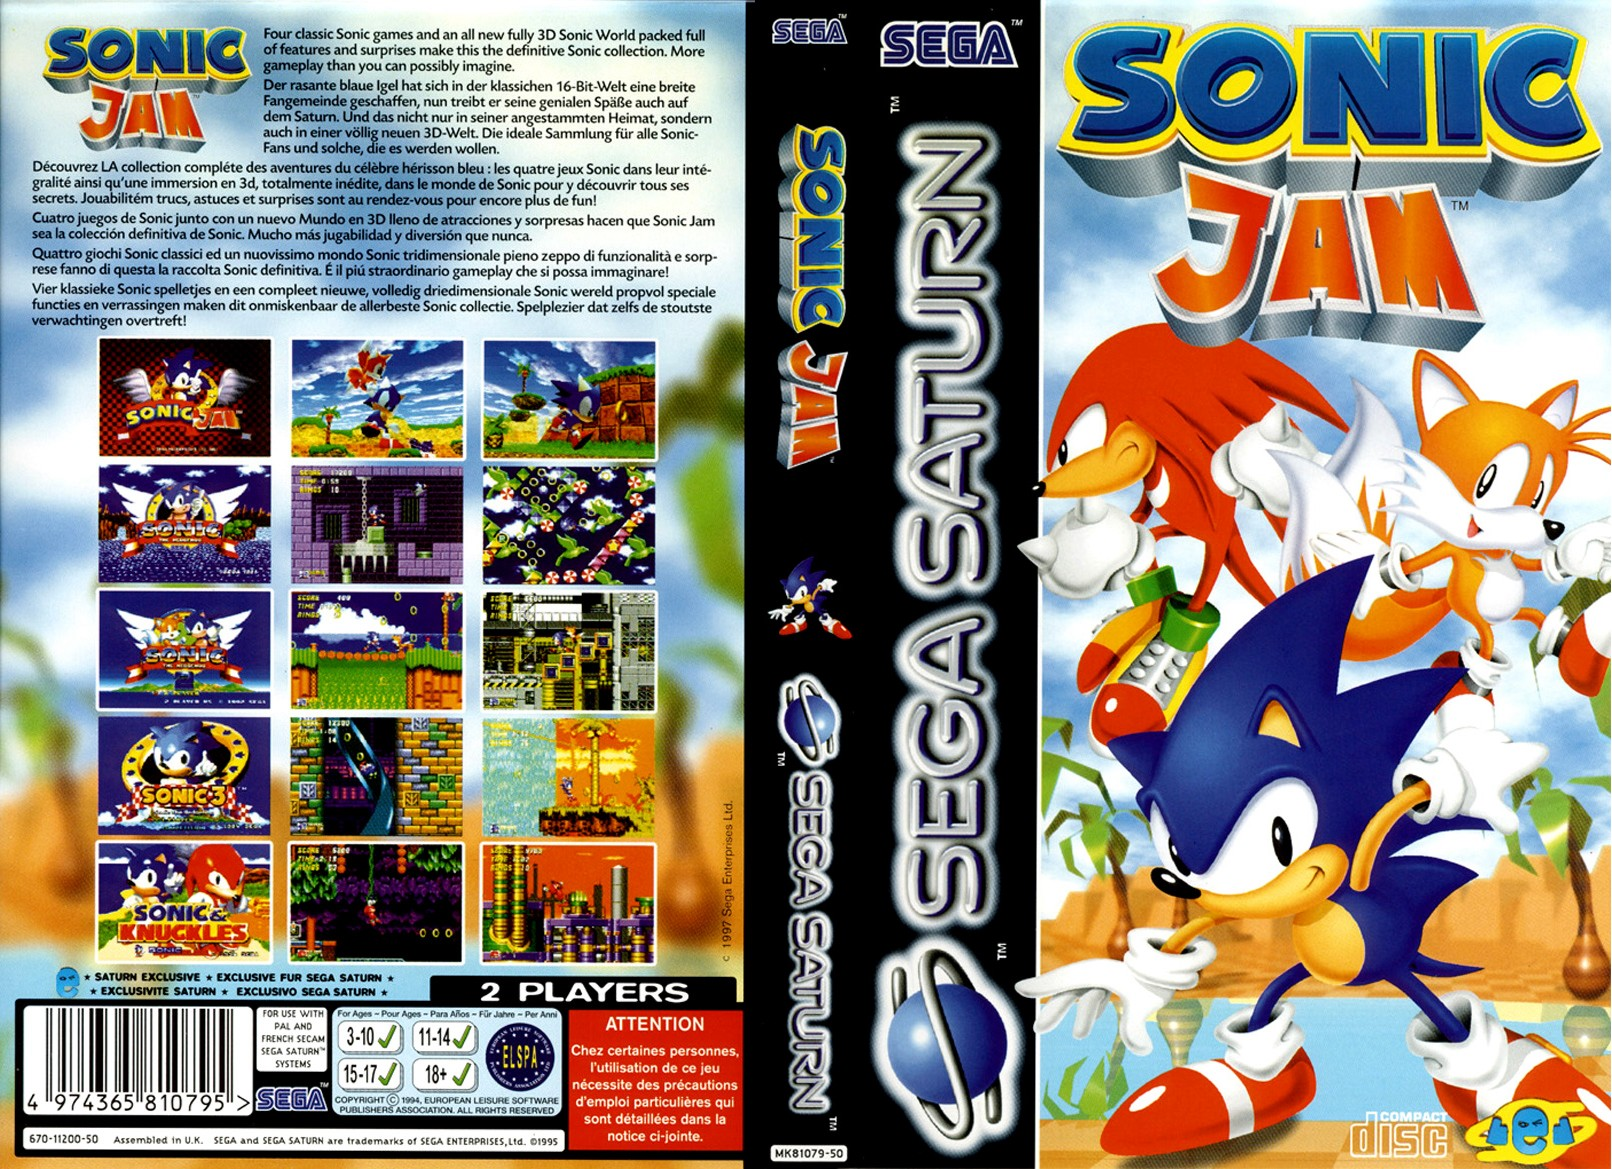 Sega Saturn S Sonic Jam E Game Covers Box Scans Box Art CD ...